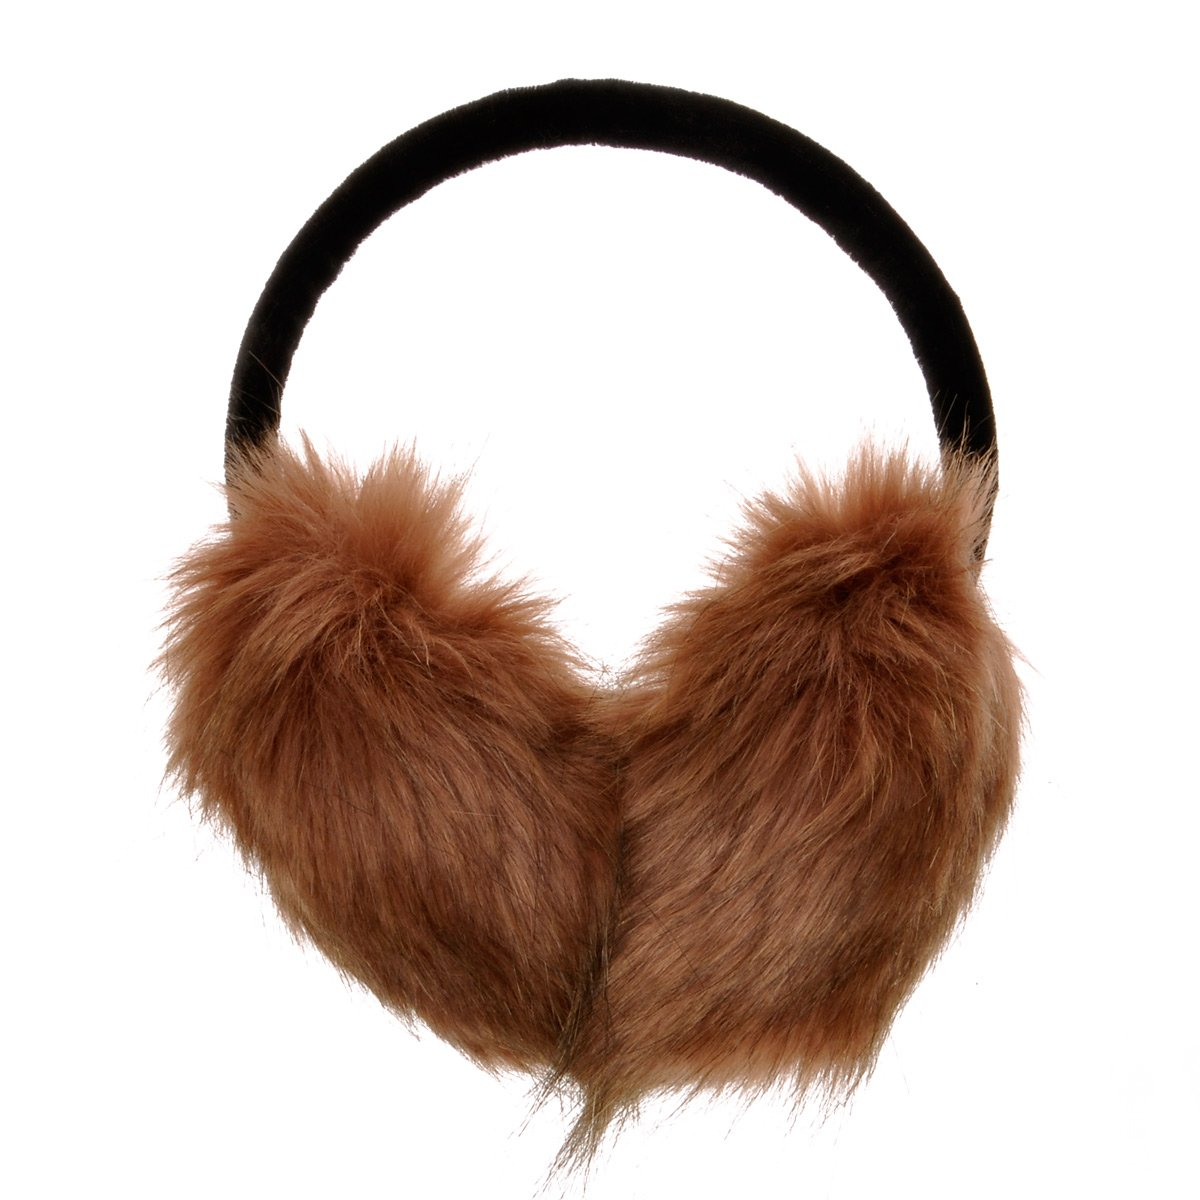 ZLYC Womens Girls Winter Fashion Adjustable Faux Fur EarMuffs Ear Warmers ZYJ-ET-007-BR-1